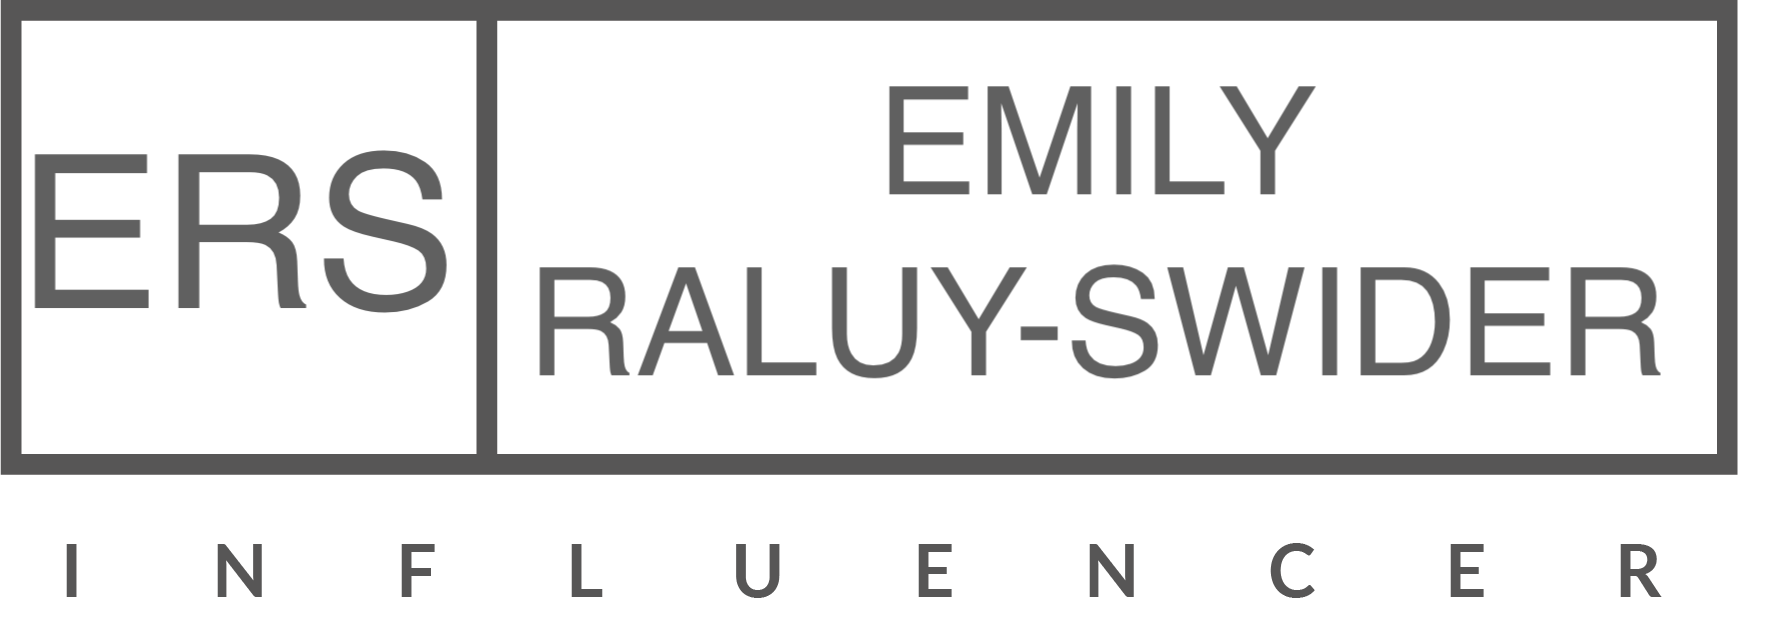 Emily Raluy swider